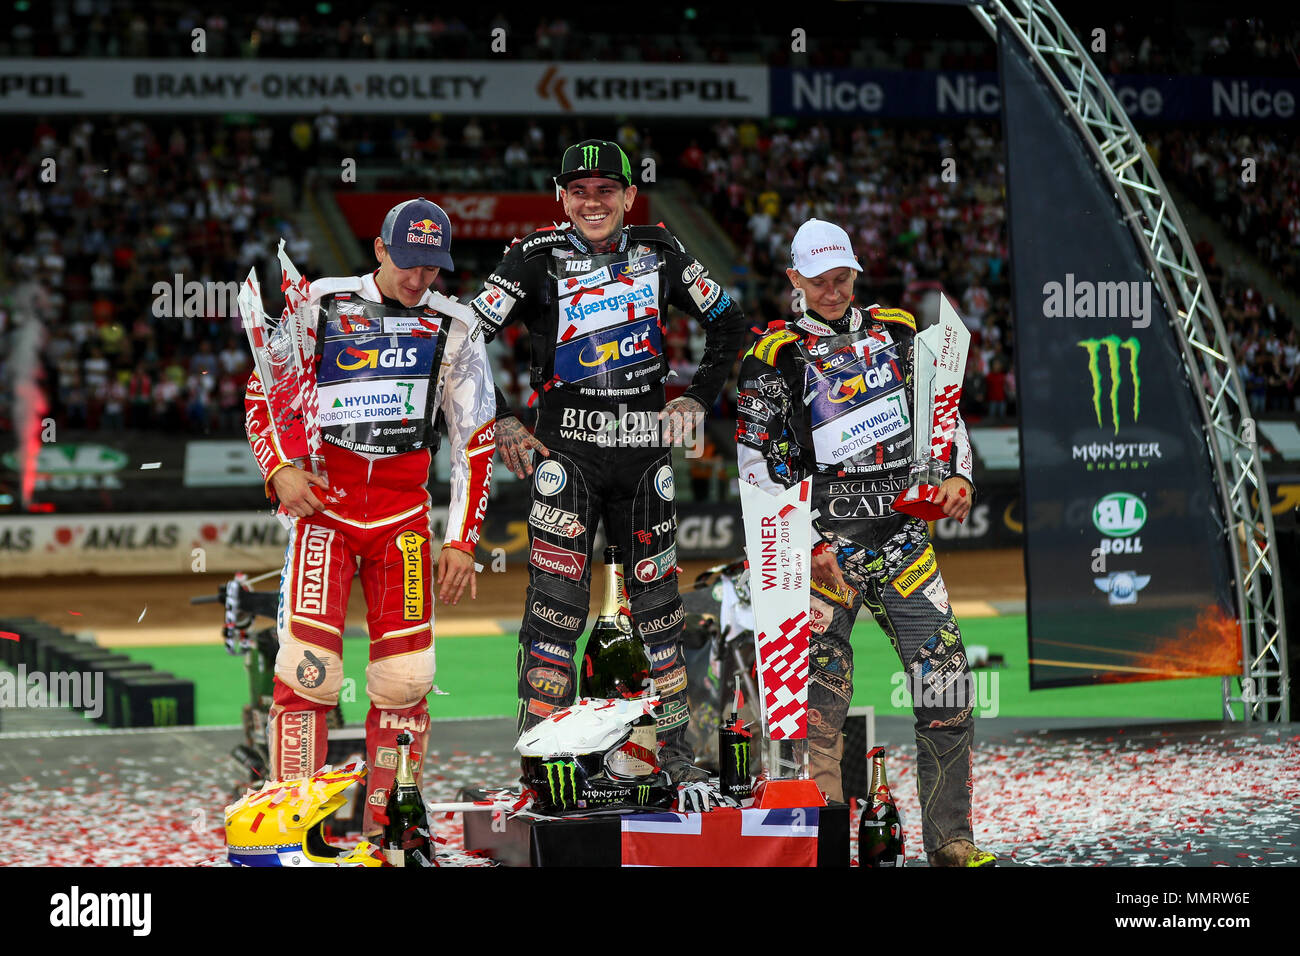 12th May, PGE National Stadium, Warsaw, Poland; Boll Warsaw FIM Speedway Grand Prix of Poland; Tai Woffinden laughs with the organisers as he could not get the champagne open whilst he celebrates winning the Warsaw FIM Speedway Grand Prix - Stock Image